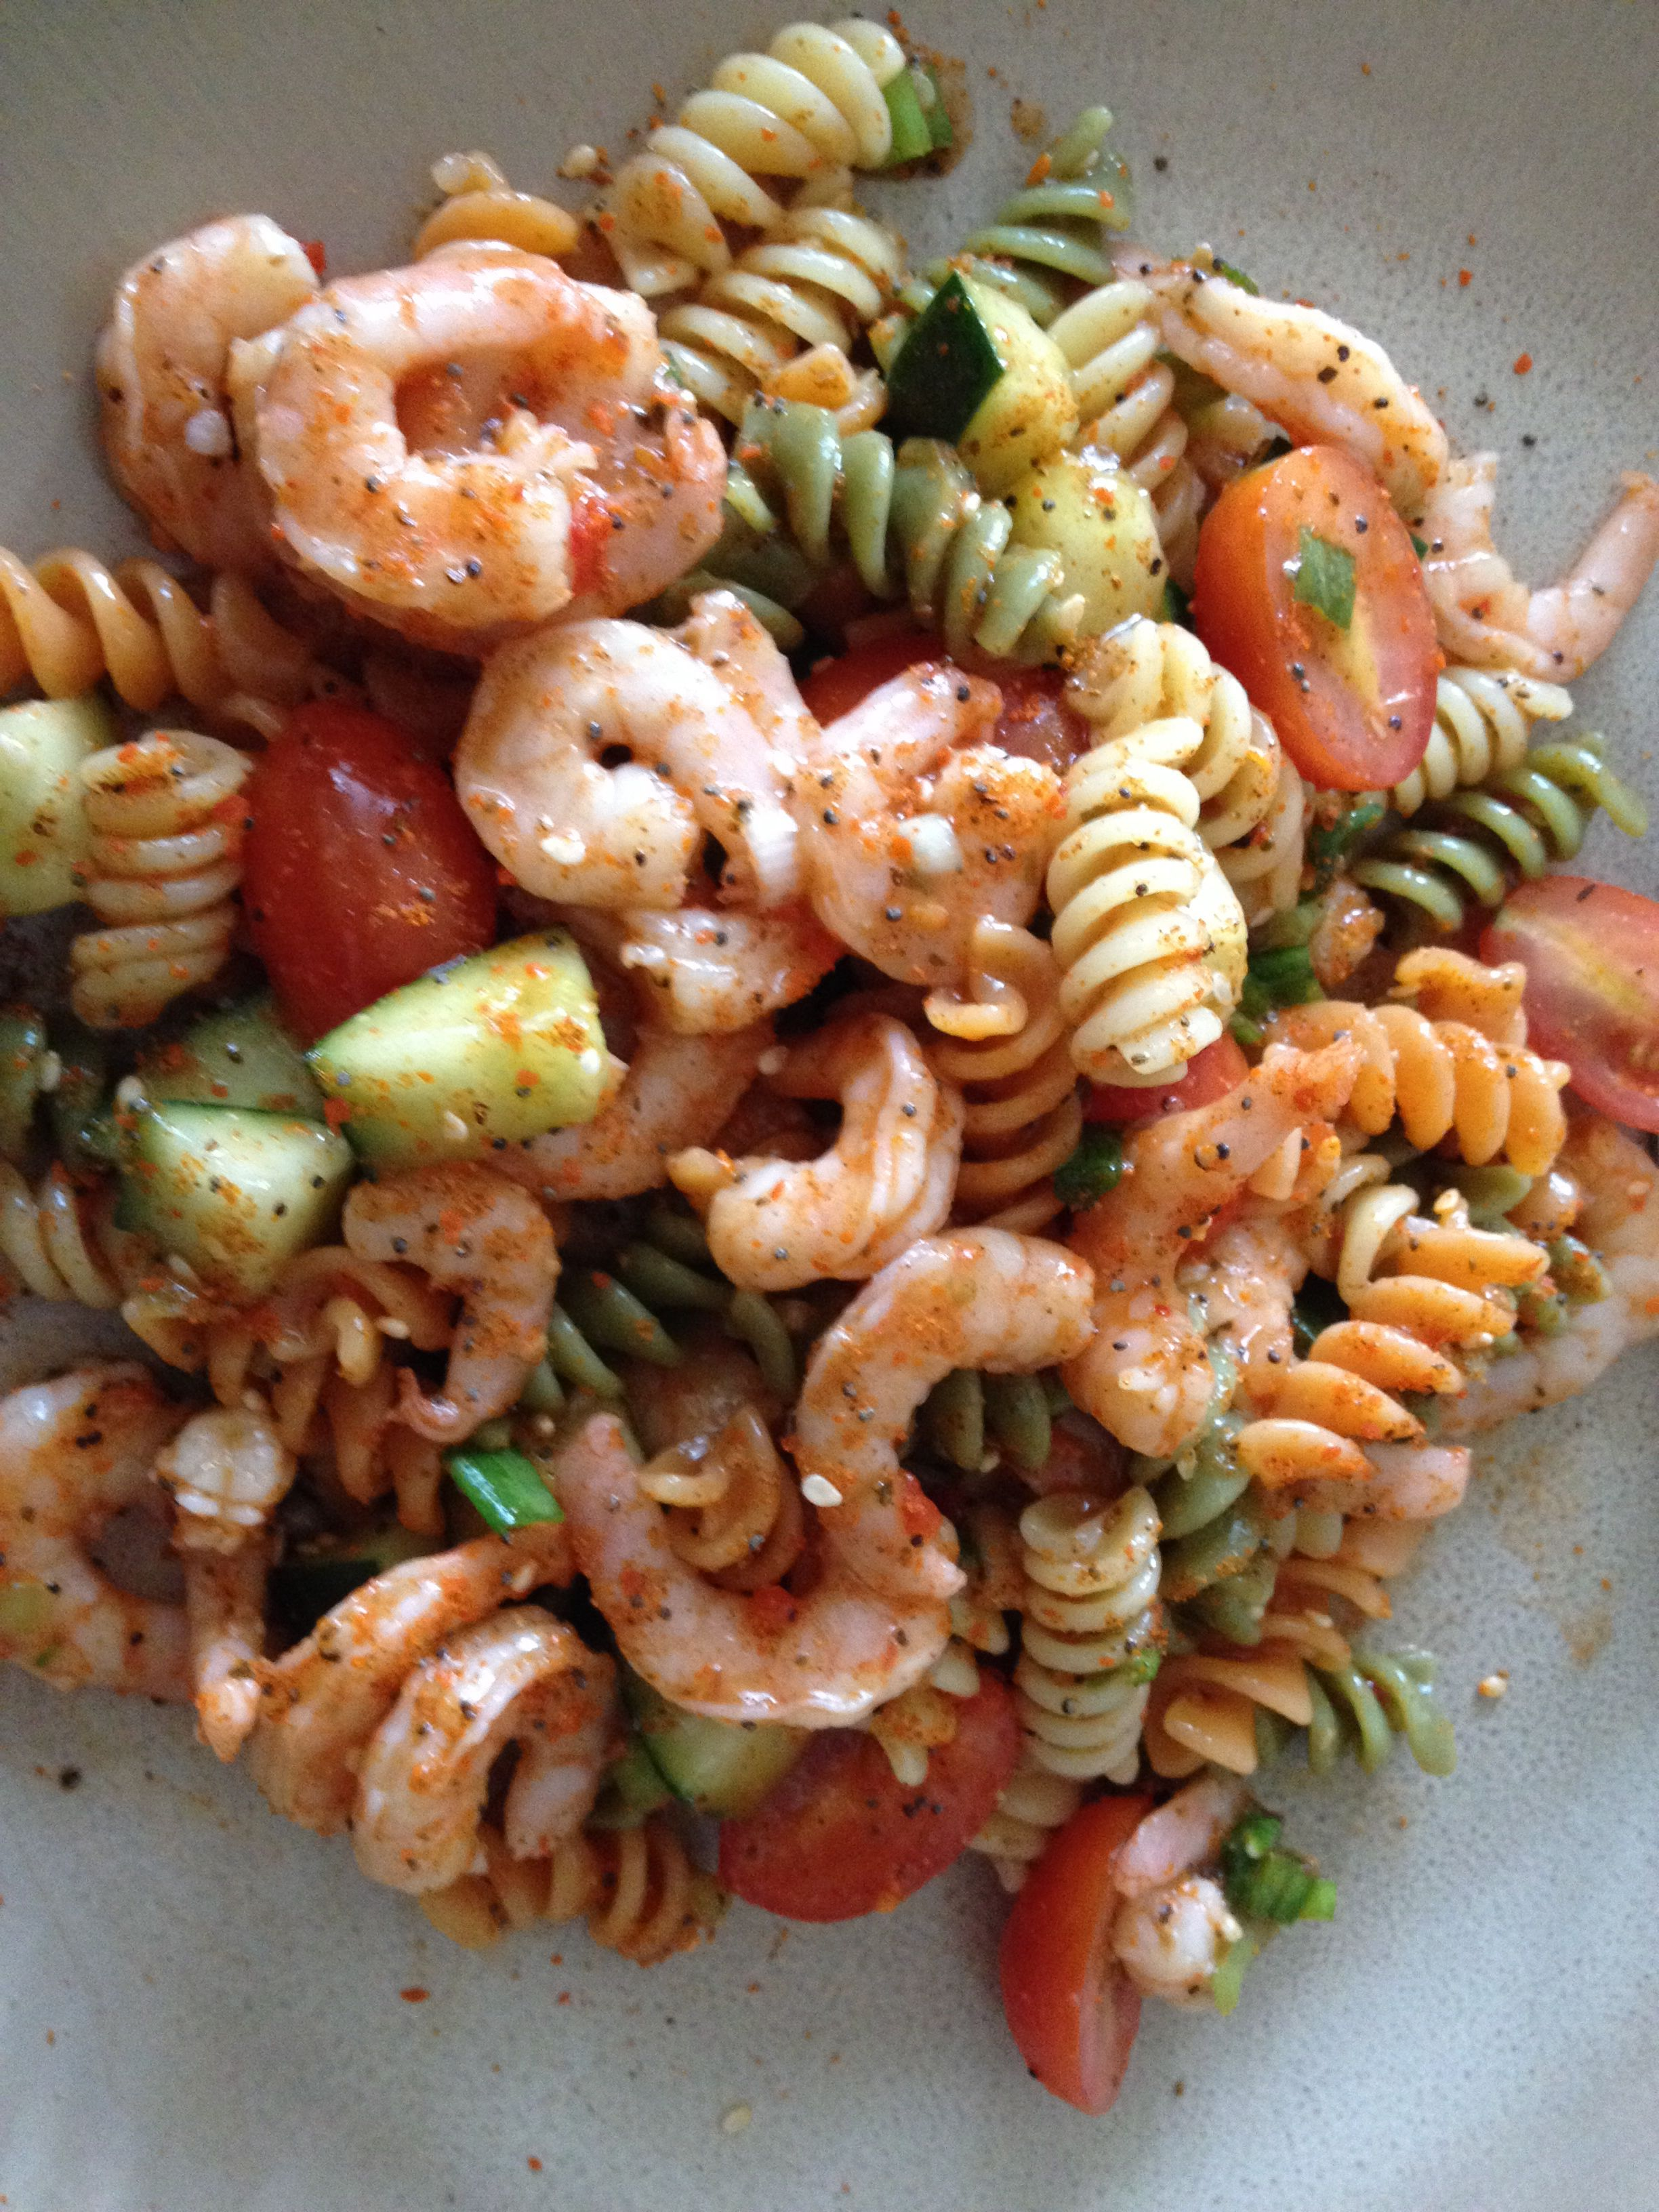 Pasta Salad With Shrimp Grape Tomatoes Cucumber Scallions Salad Supreme Seasoning And Bell P Sea Food Salad Recipes Seafood Salad Pasta Shrimp Pasta Salad